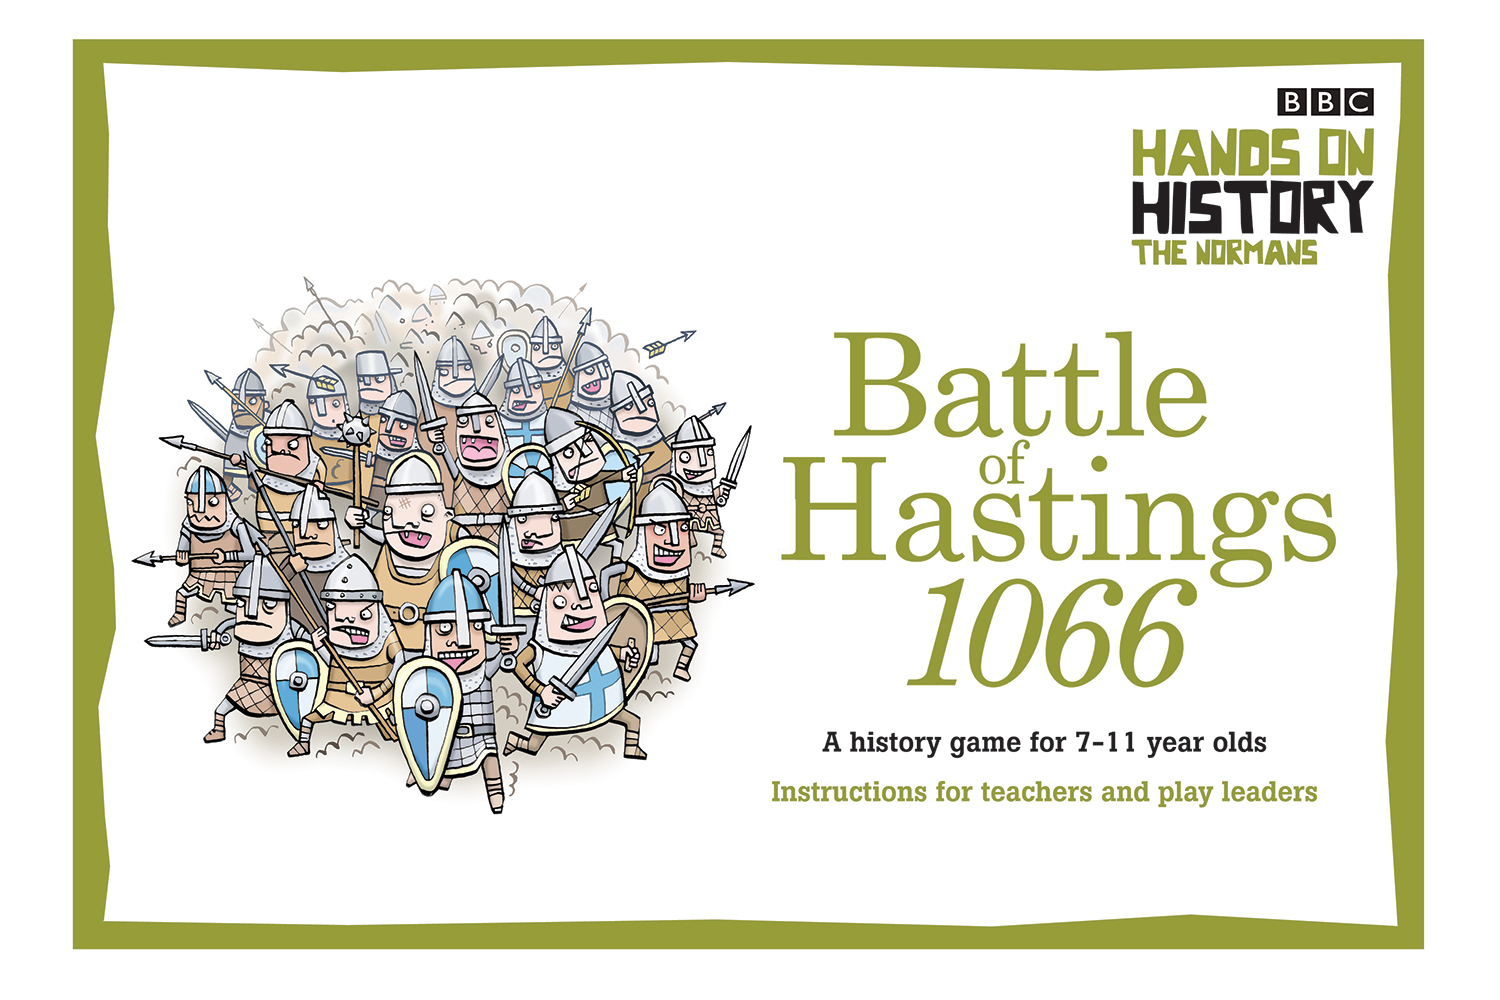 BBC Battle of Hastings